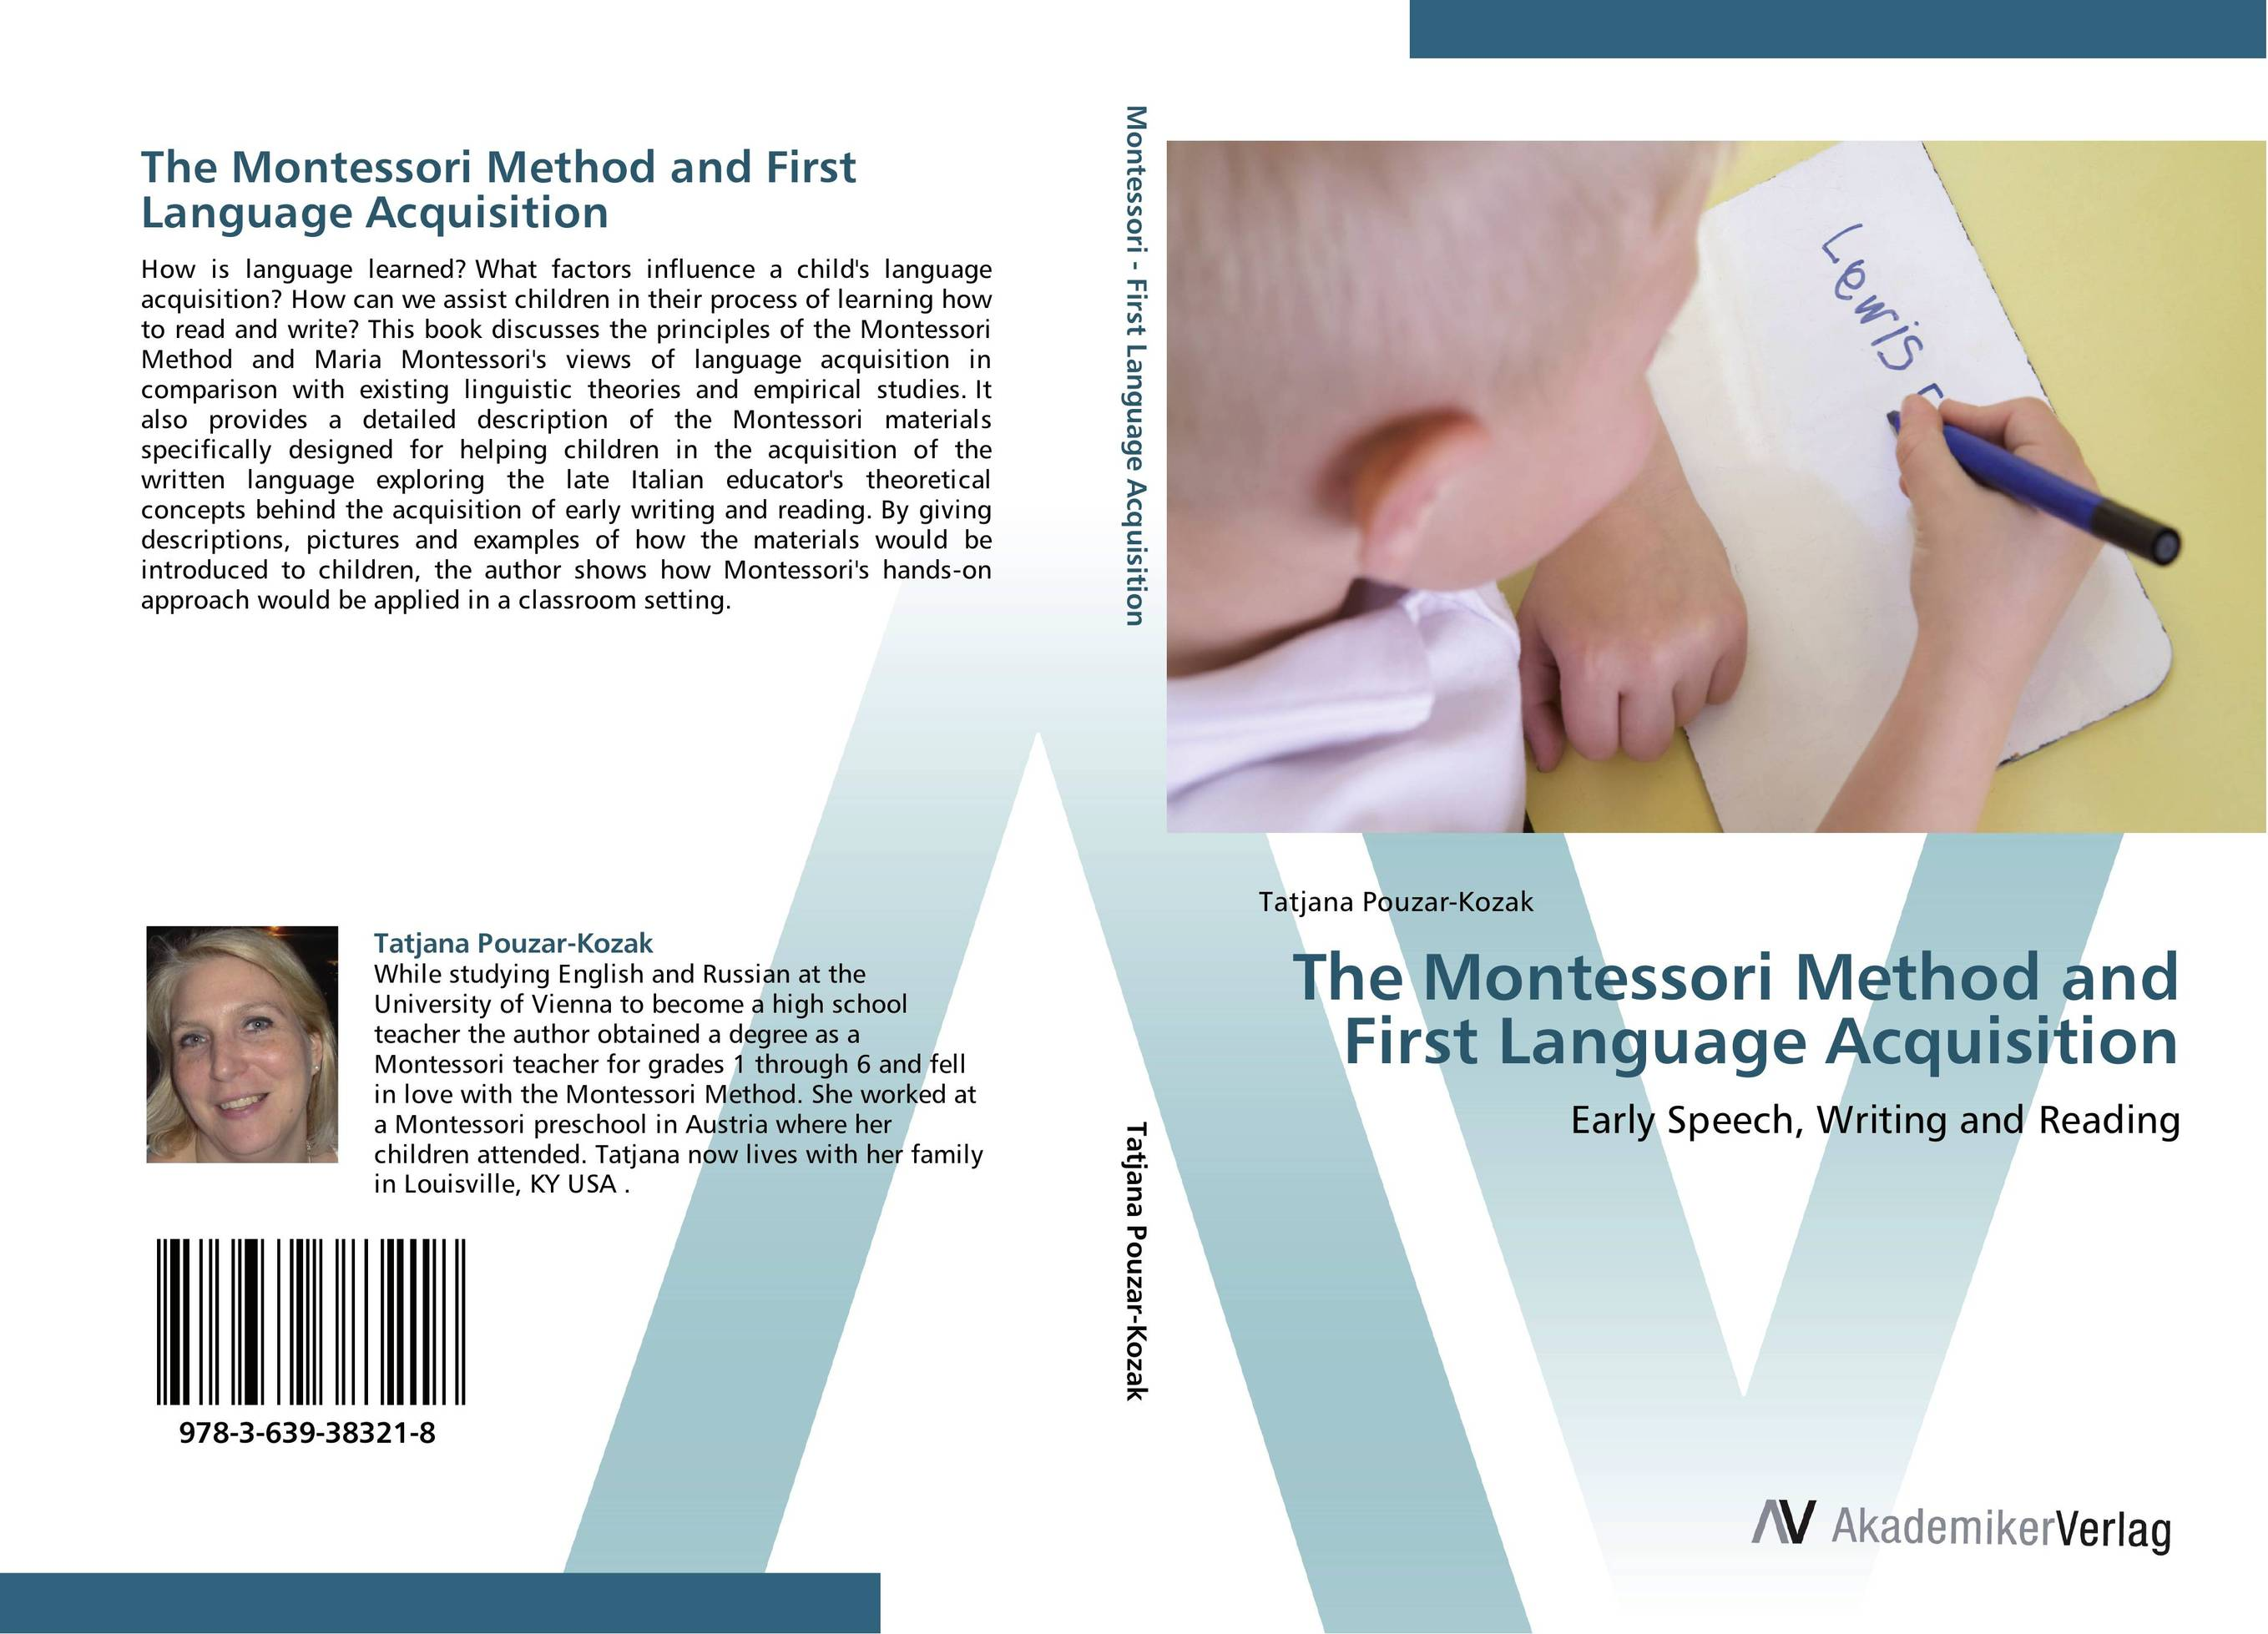 The Montessori Method and First Language Acquisition raja abhilash punagoti and venkateshwar rao jupally introduction to analytical method development and validation